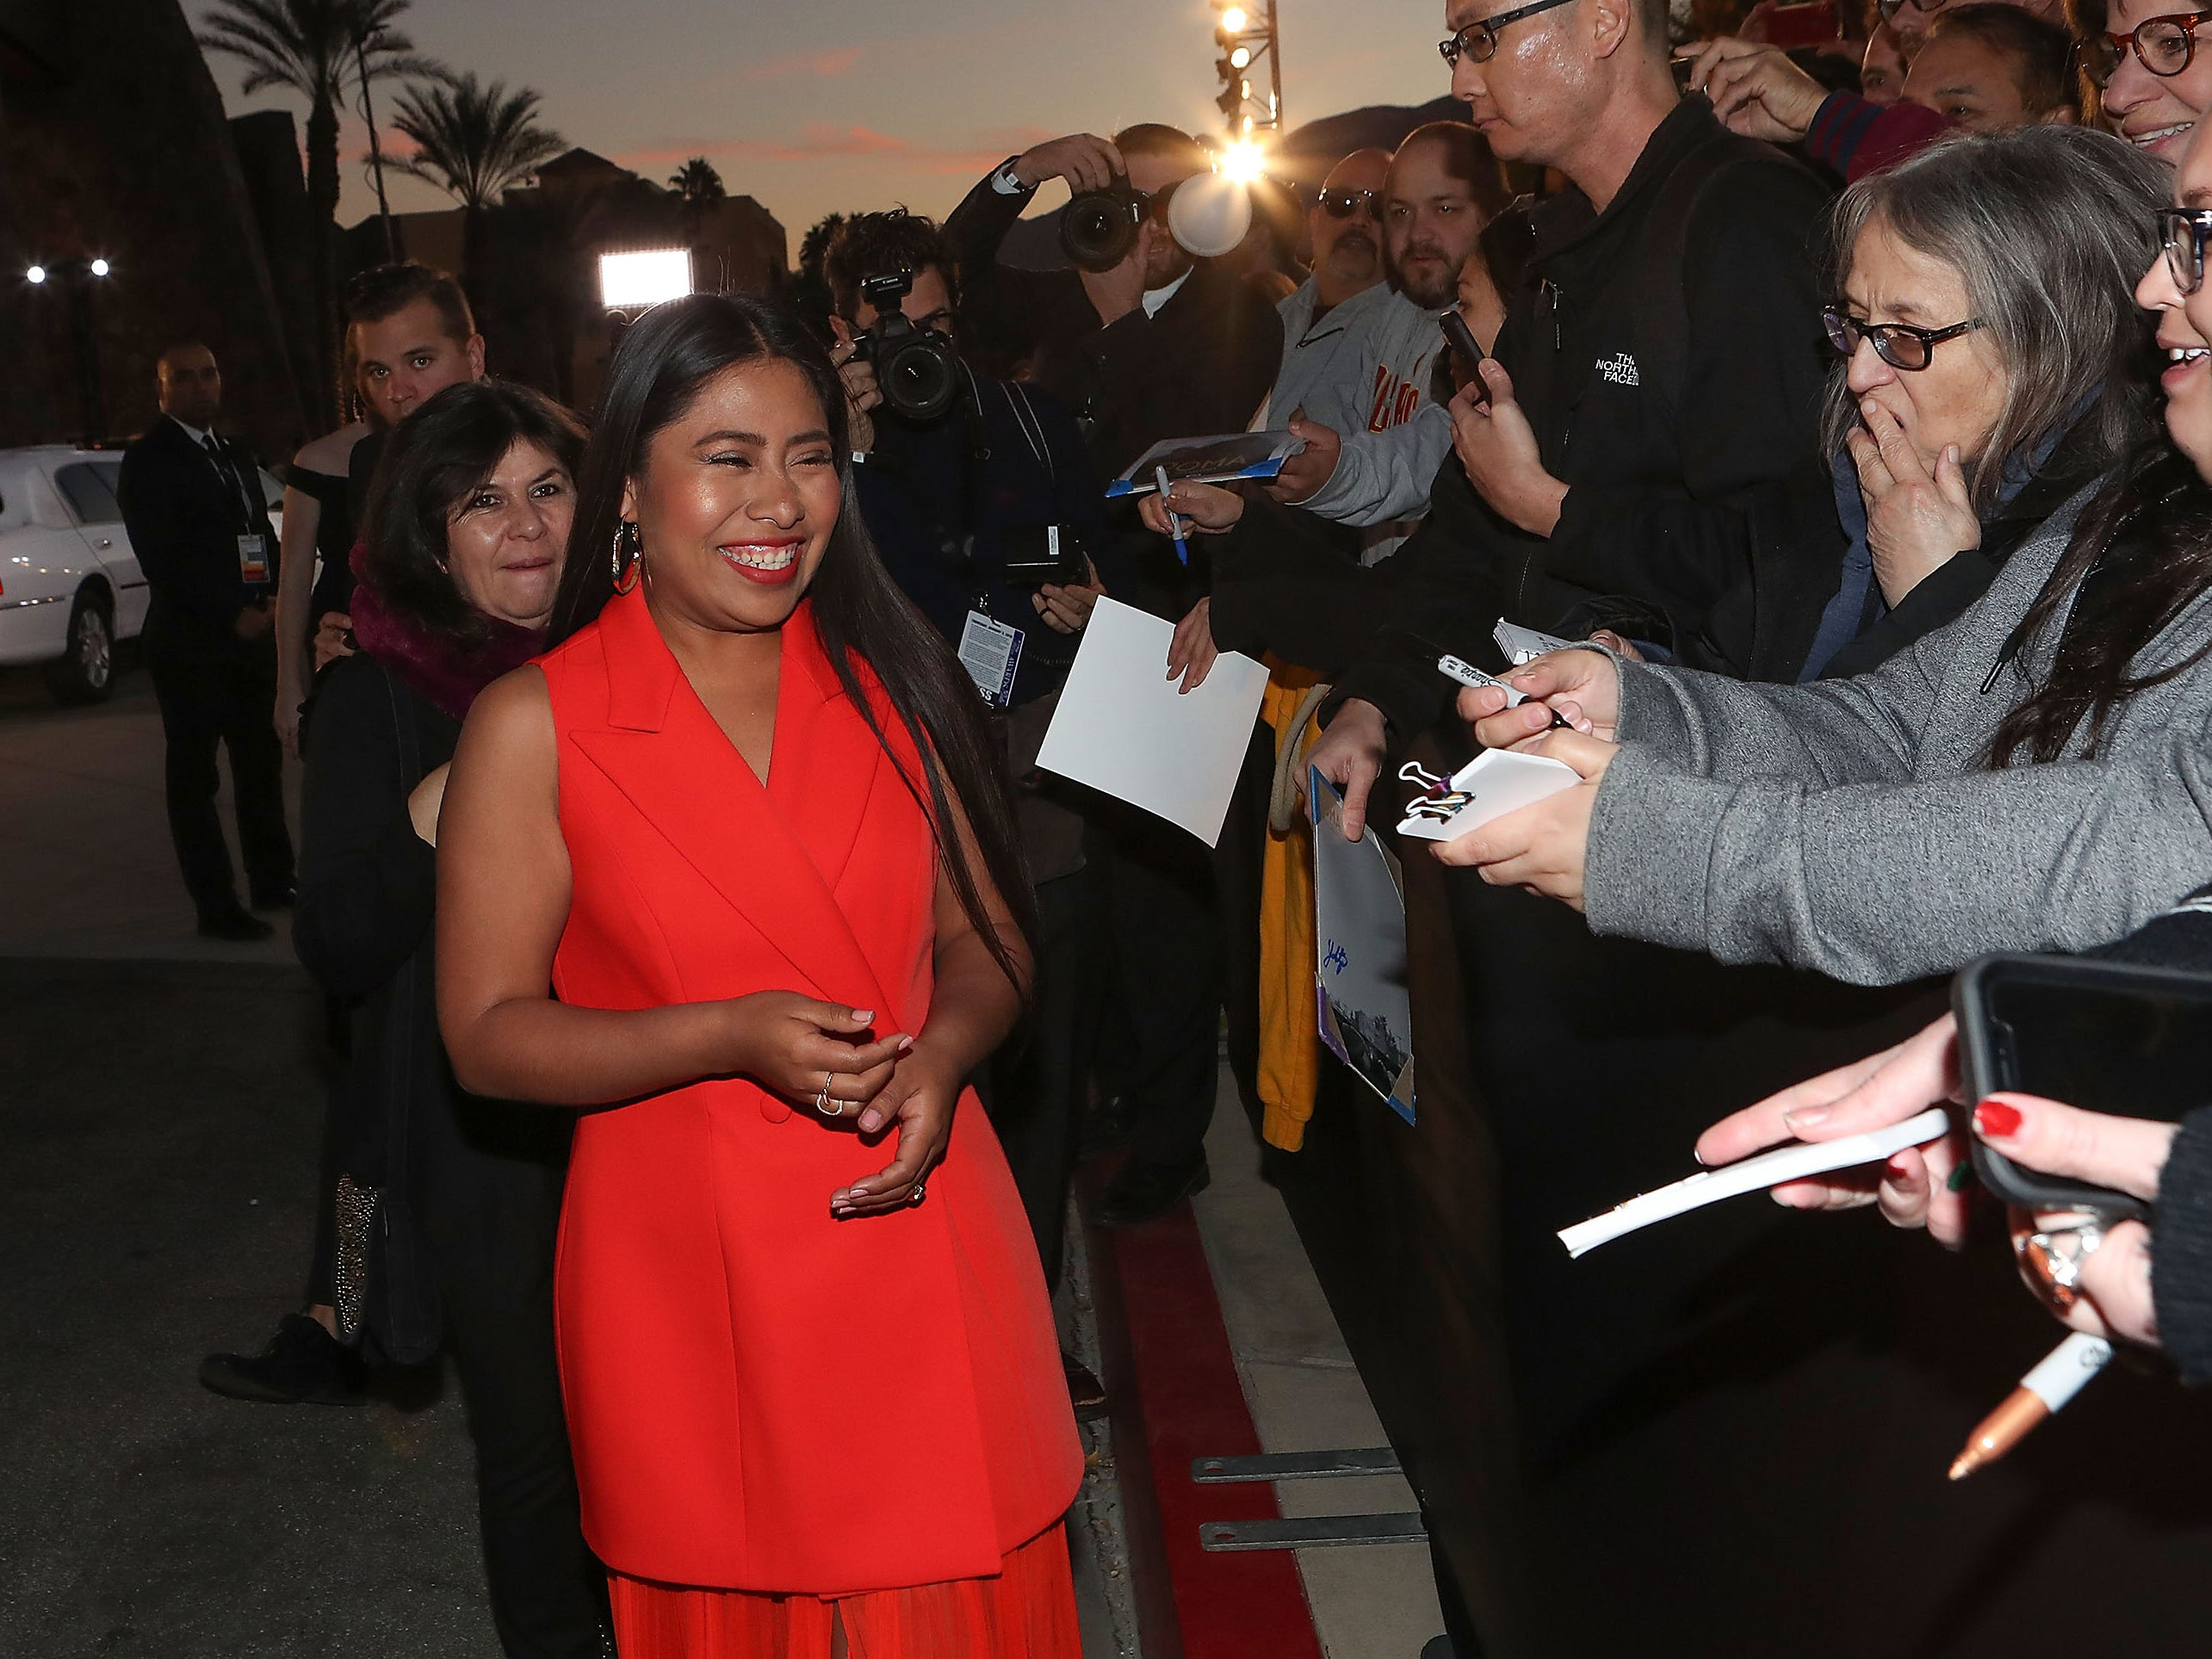 Yalitza Aparicio signs autographs for fans at the Palm Springs International Film Festival Awards Gala, January 3, 2019.